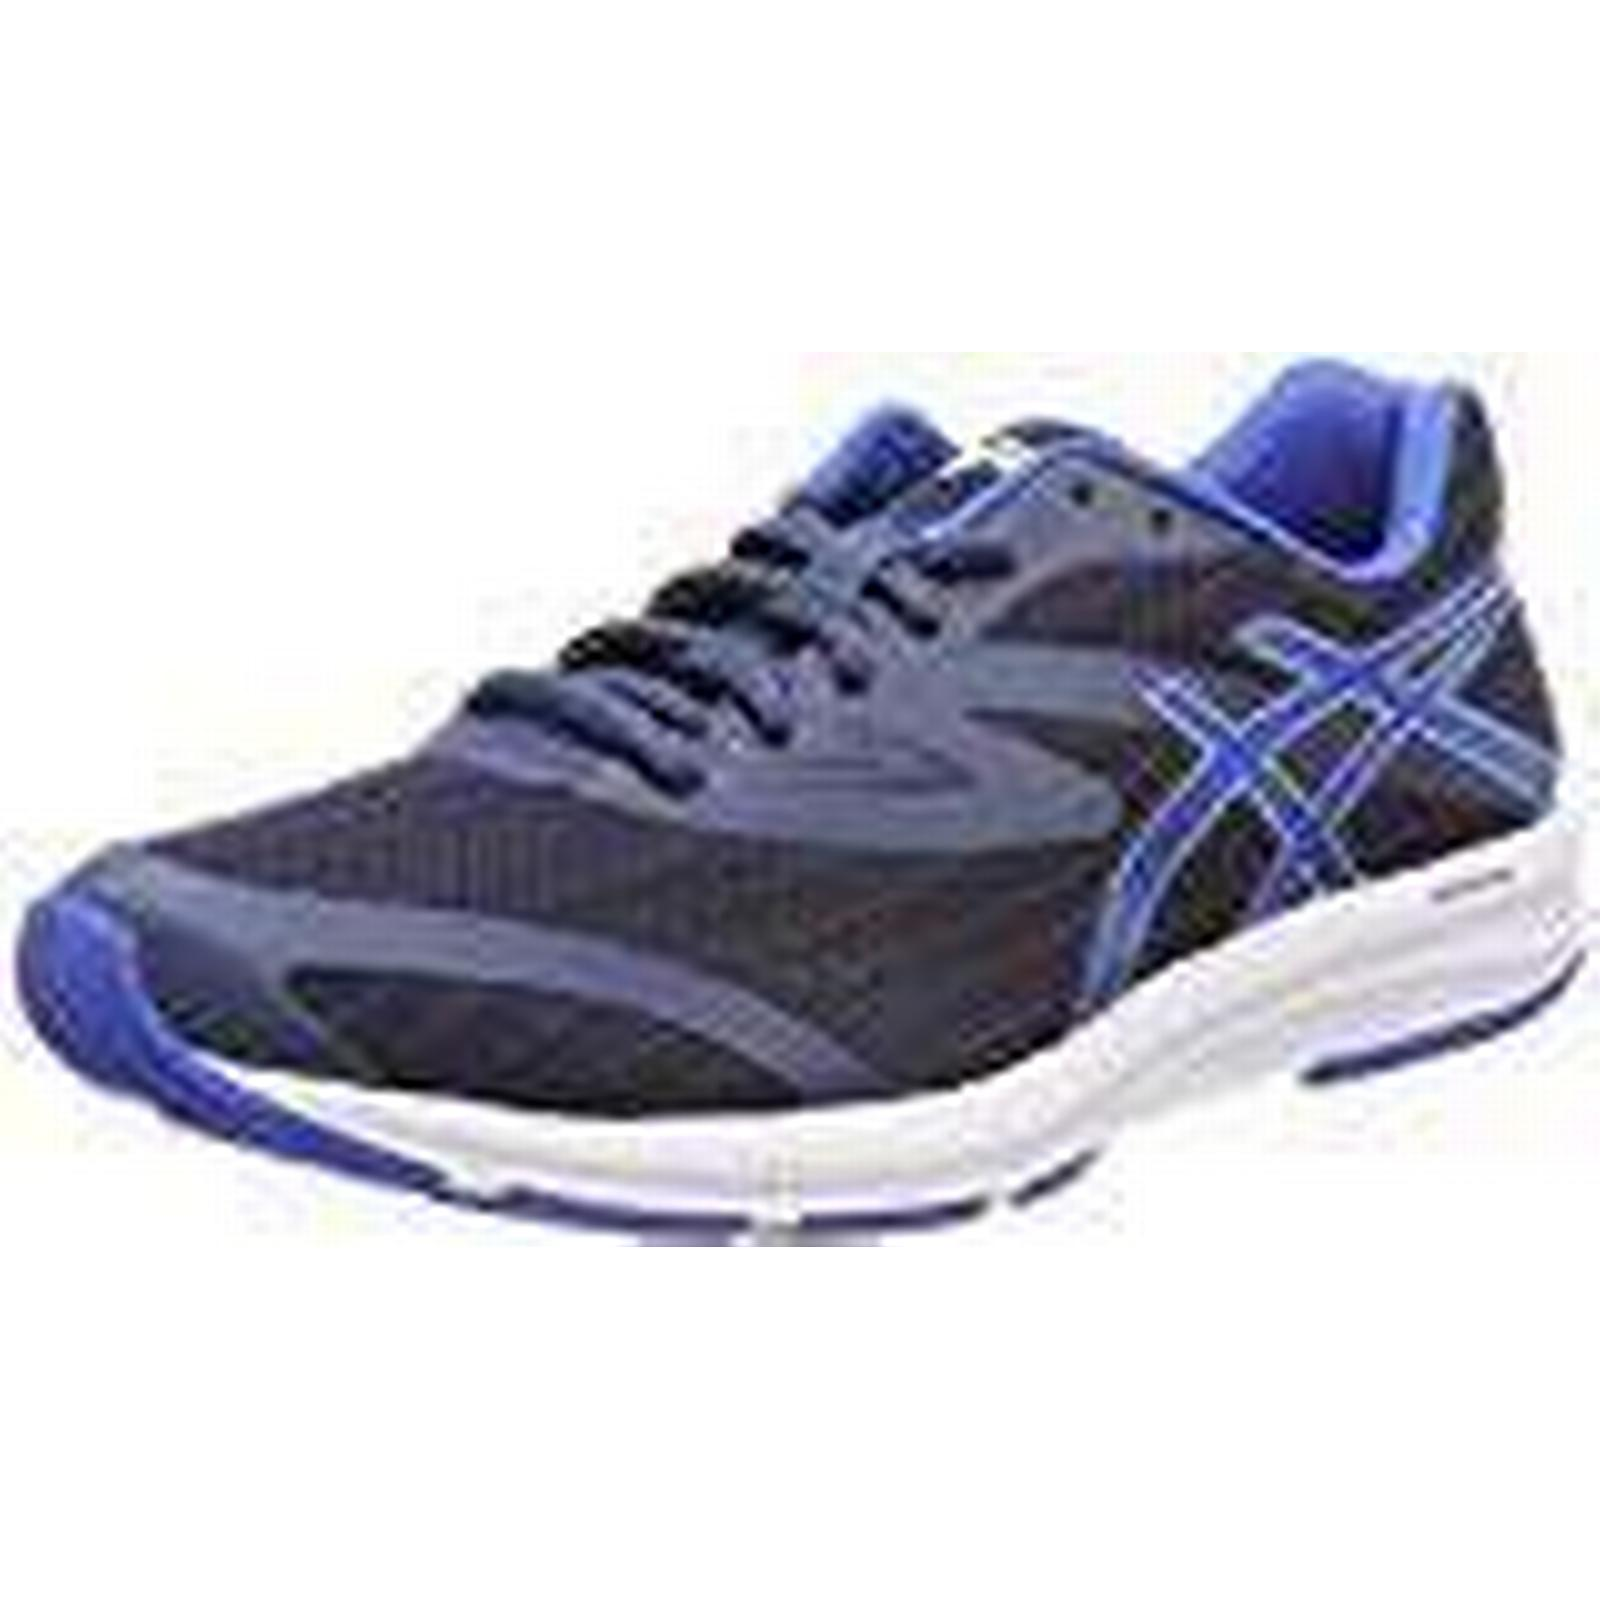 Asics Men's Amplica 4945), Competition Running Shoes, (Dark Victoria Blue/White 4945), Amplica 9 UK 0071ad